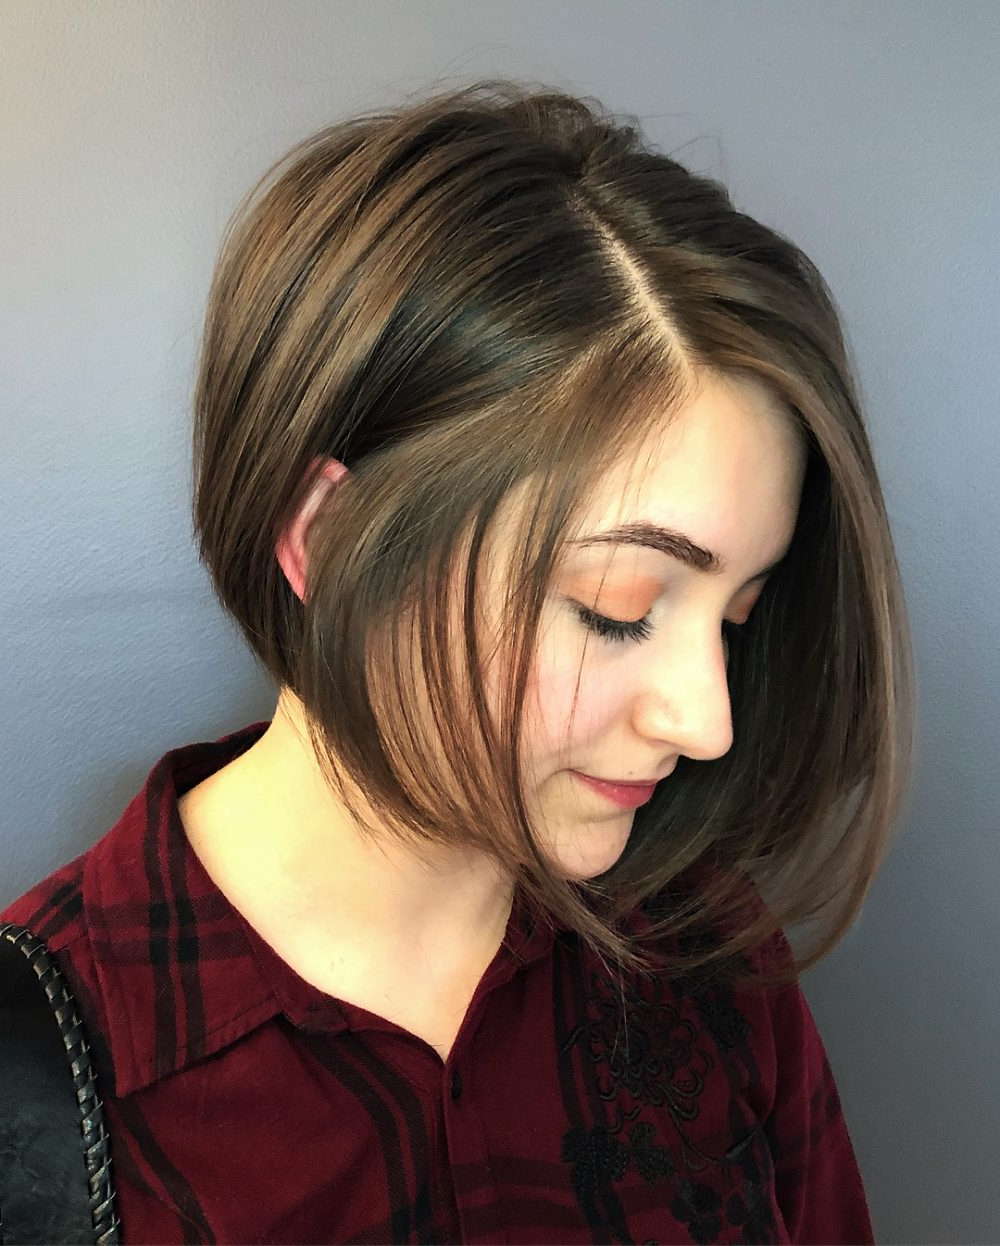 33 Flattering Short Hairstyles For Round Faces In 2018 In Short Hairstyles With Bangs For Round Face (View 2 of 25)